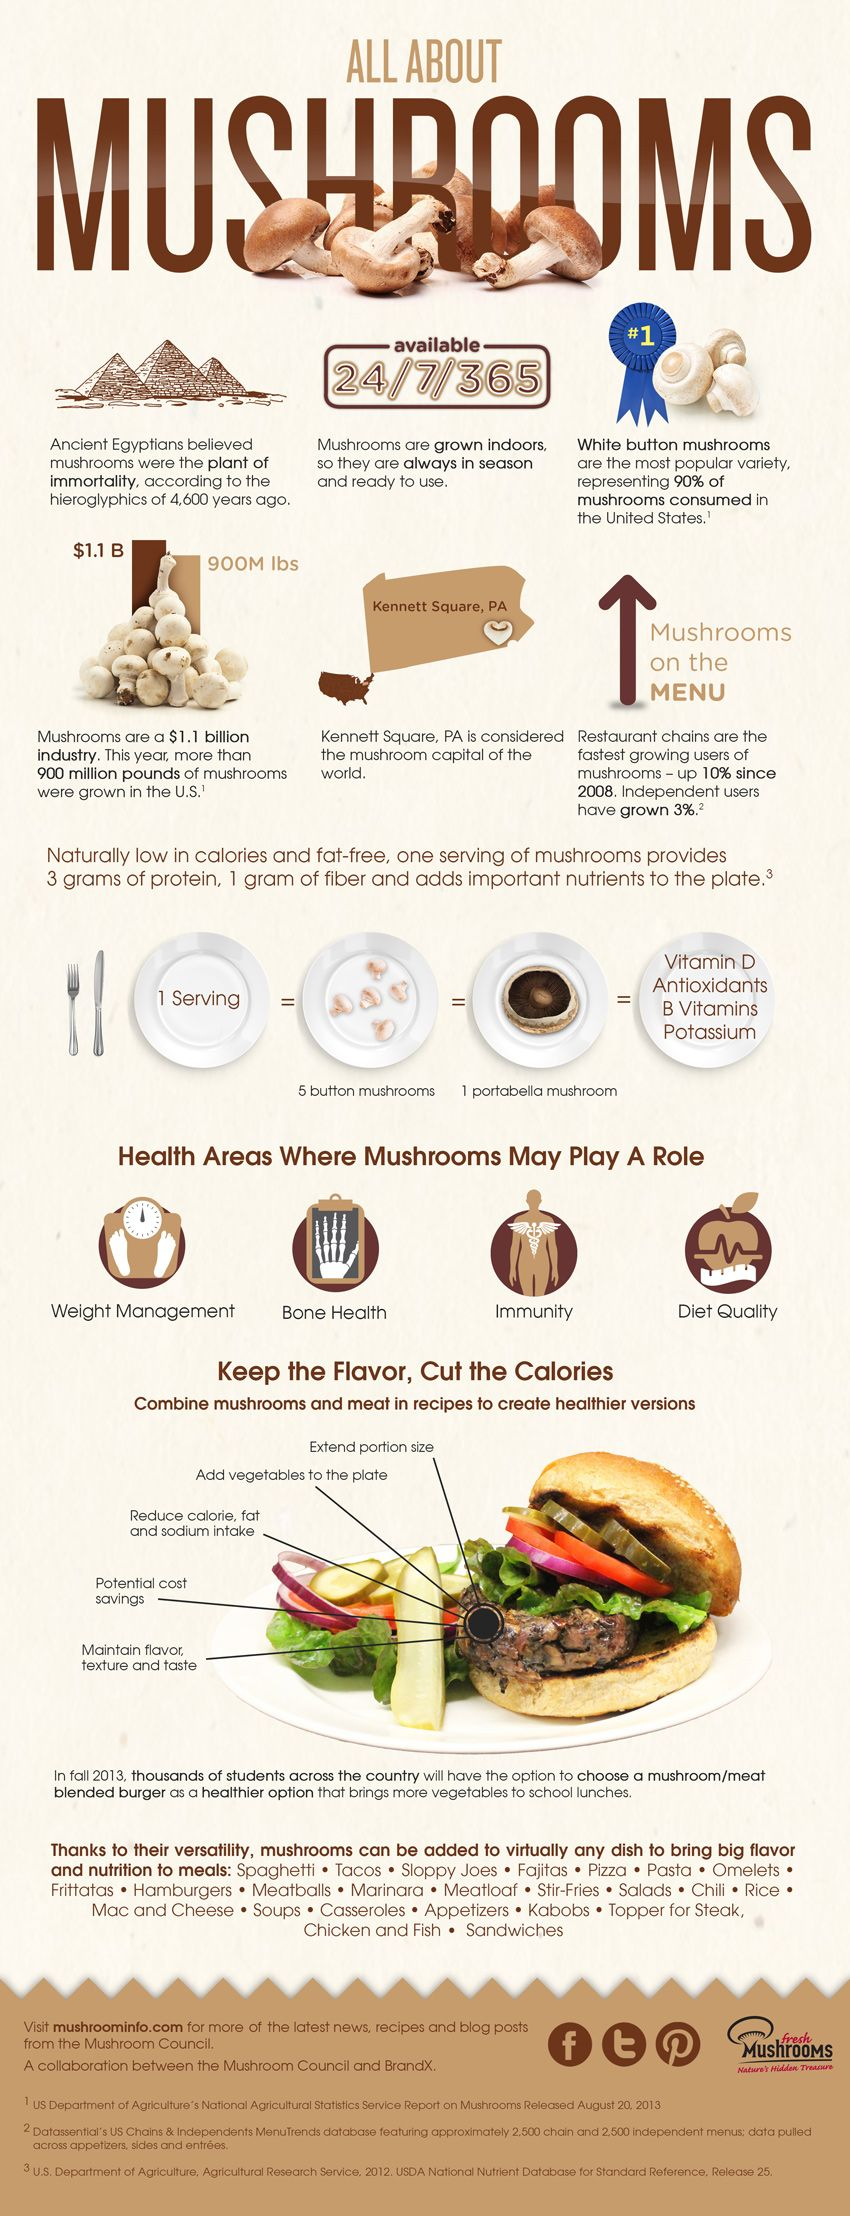 All About Mushrooms Infographic | MUSHROOMS 101 ...